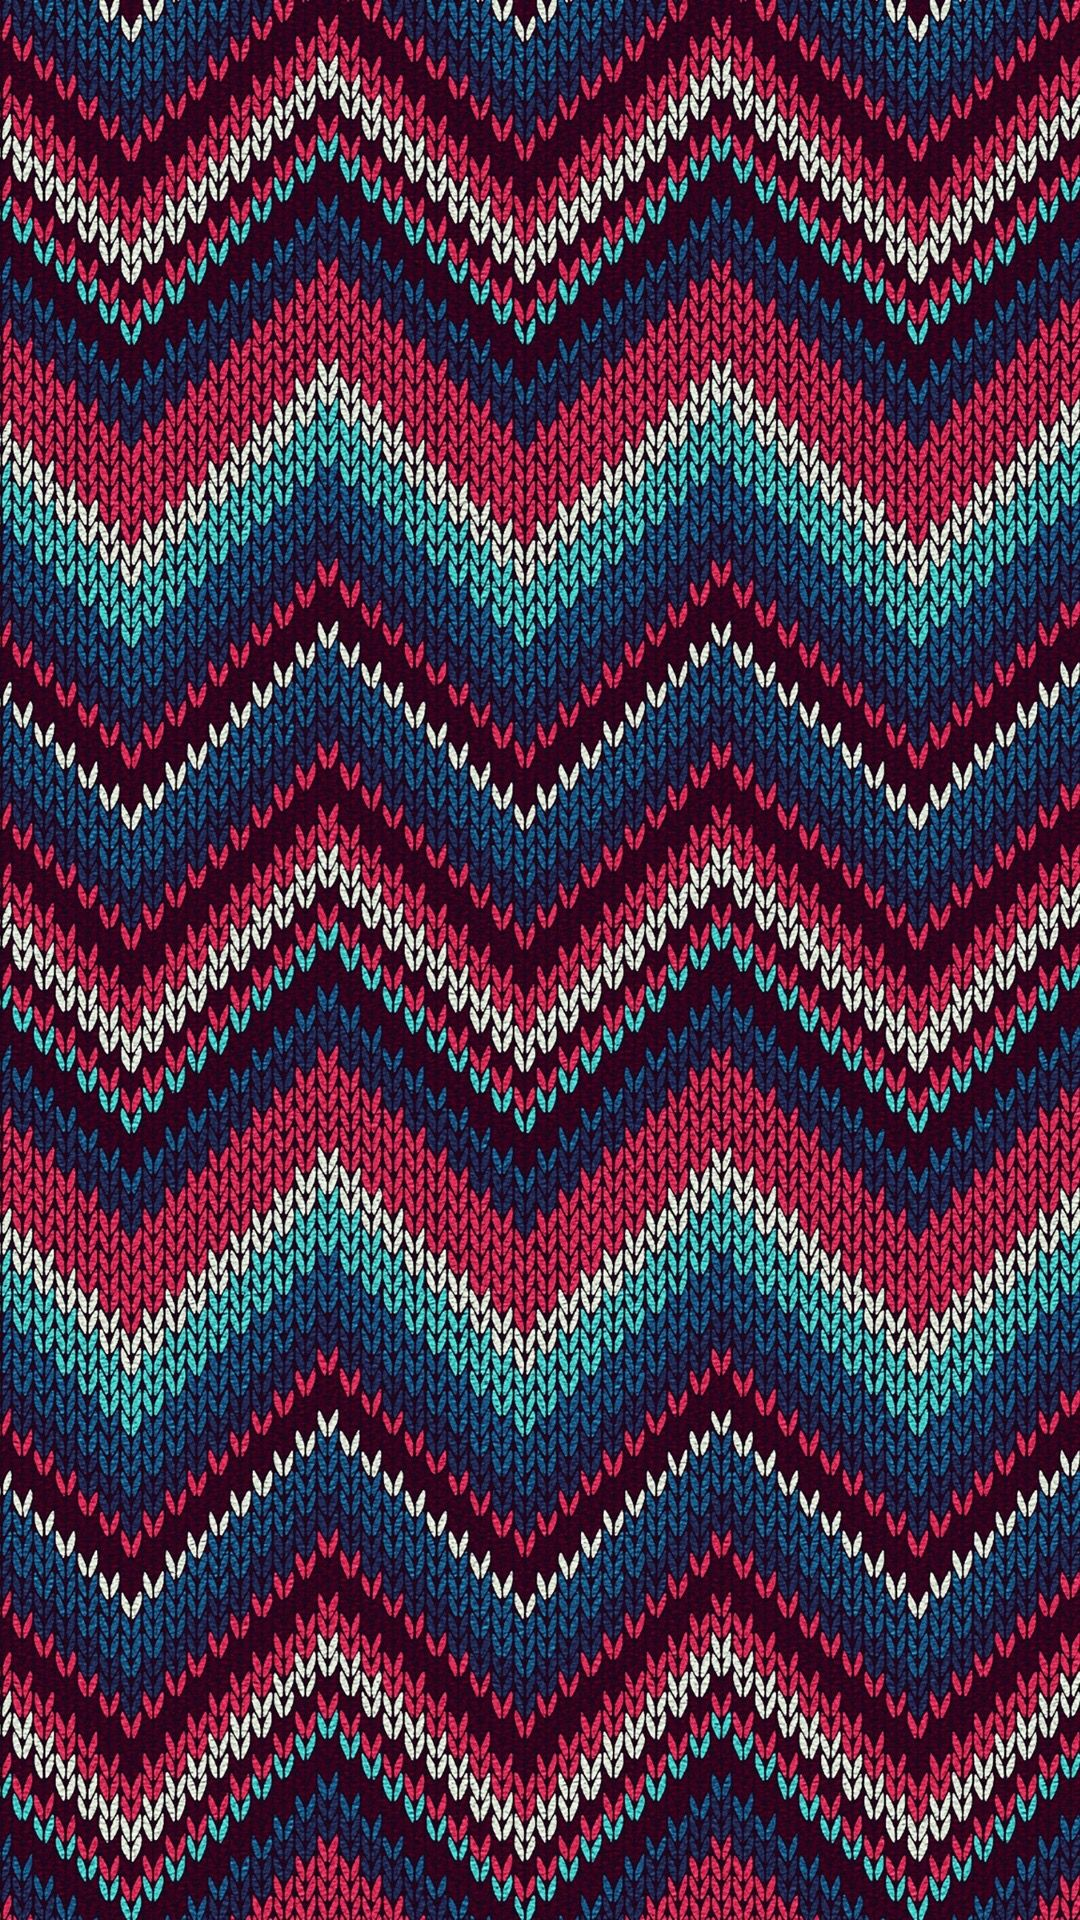 Pin By Angelica Lady On ☆♧♡♢ 176 Patterns 176 ♢♡♧☆ In 2019